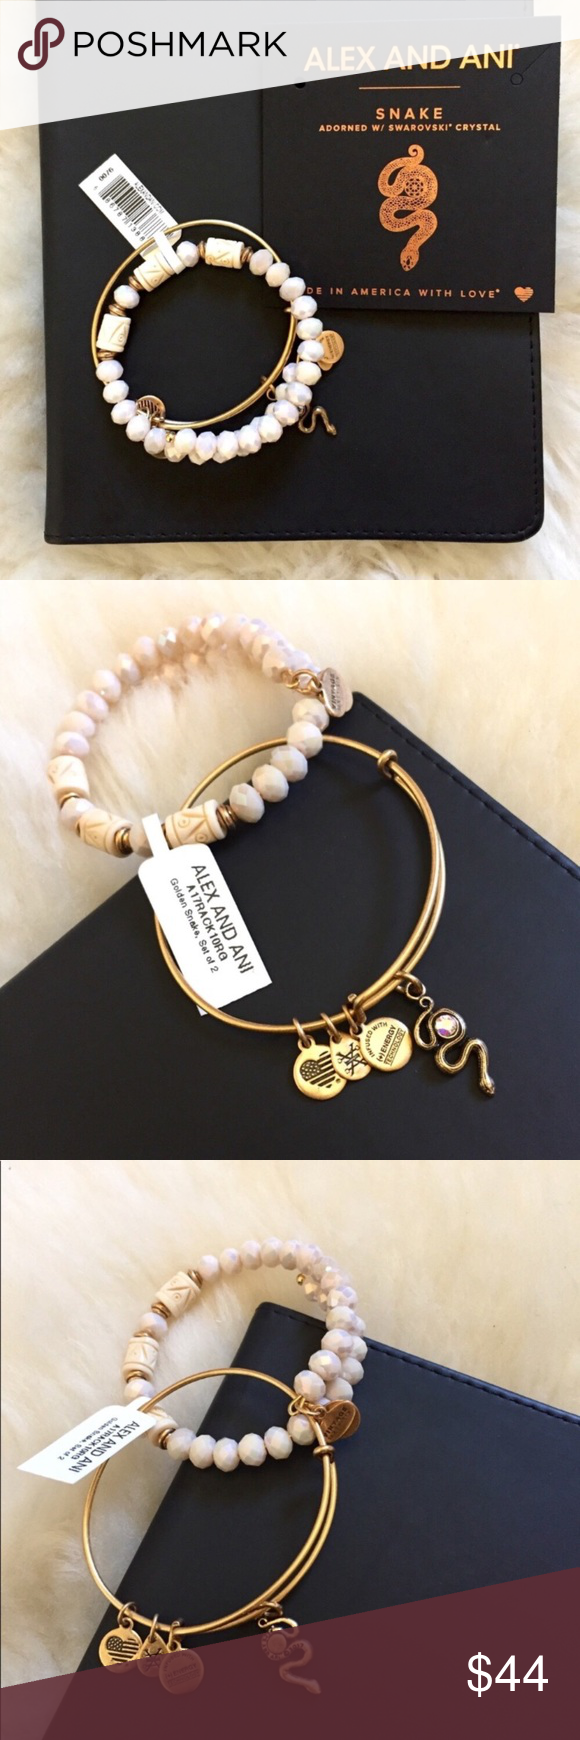 Alex And Ani Snake Beaded Expandable Wire Bangles New With